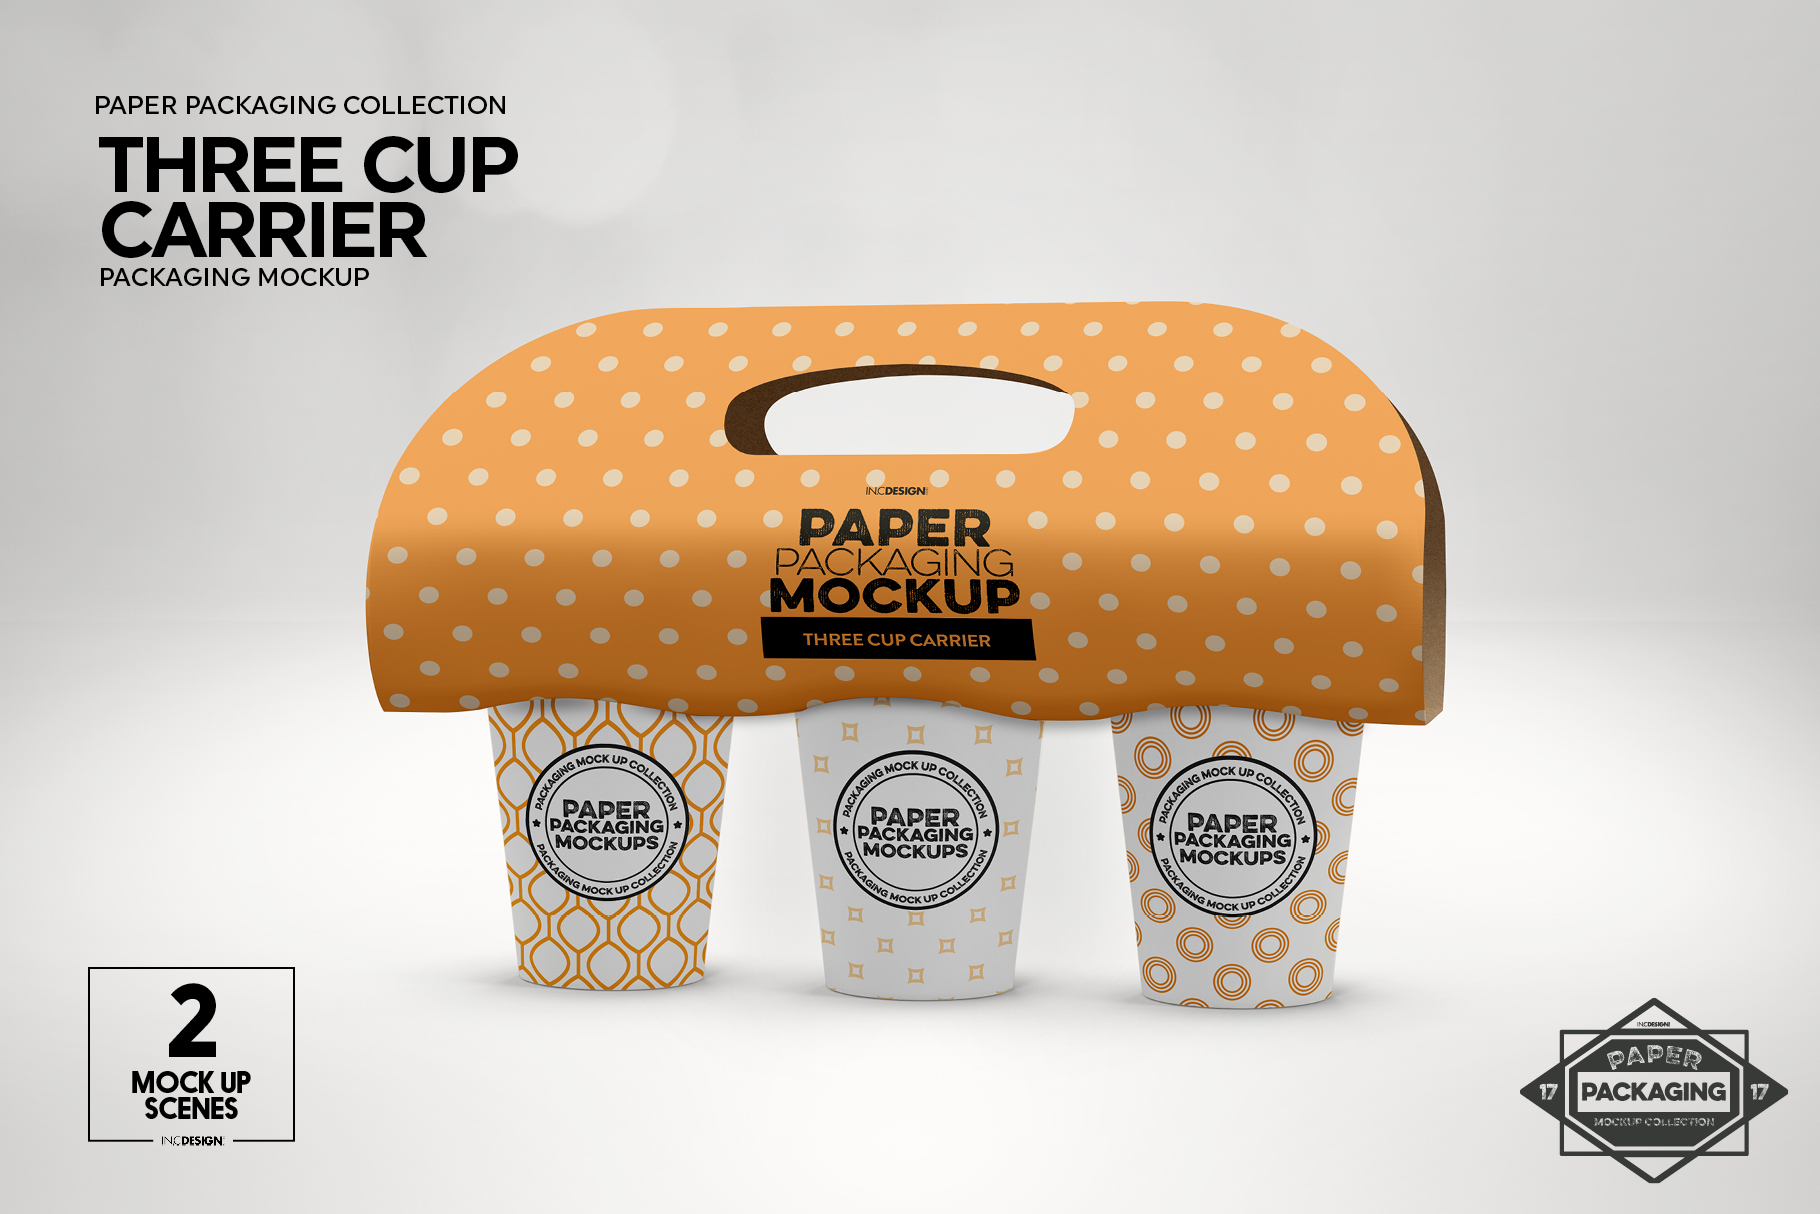 Three Cup Paper Carrier Packaging Mockup example image 6